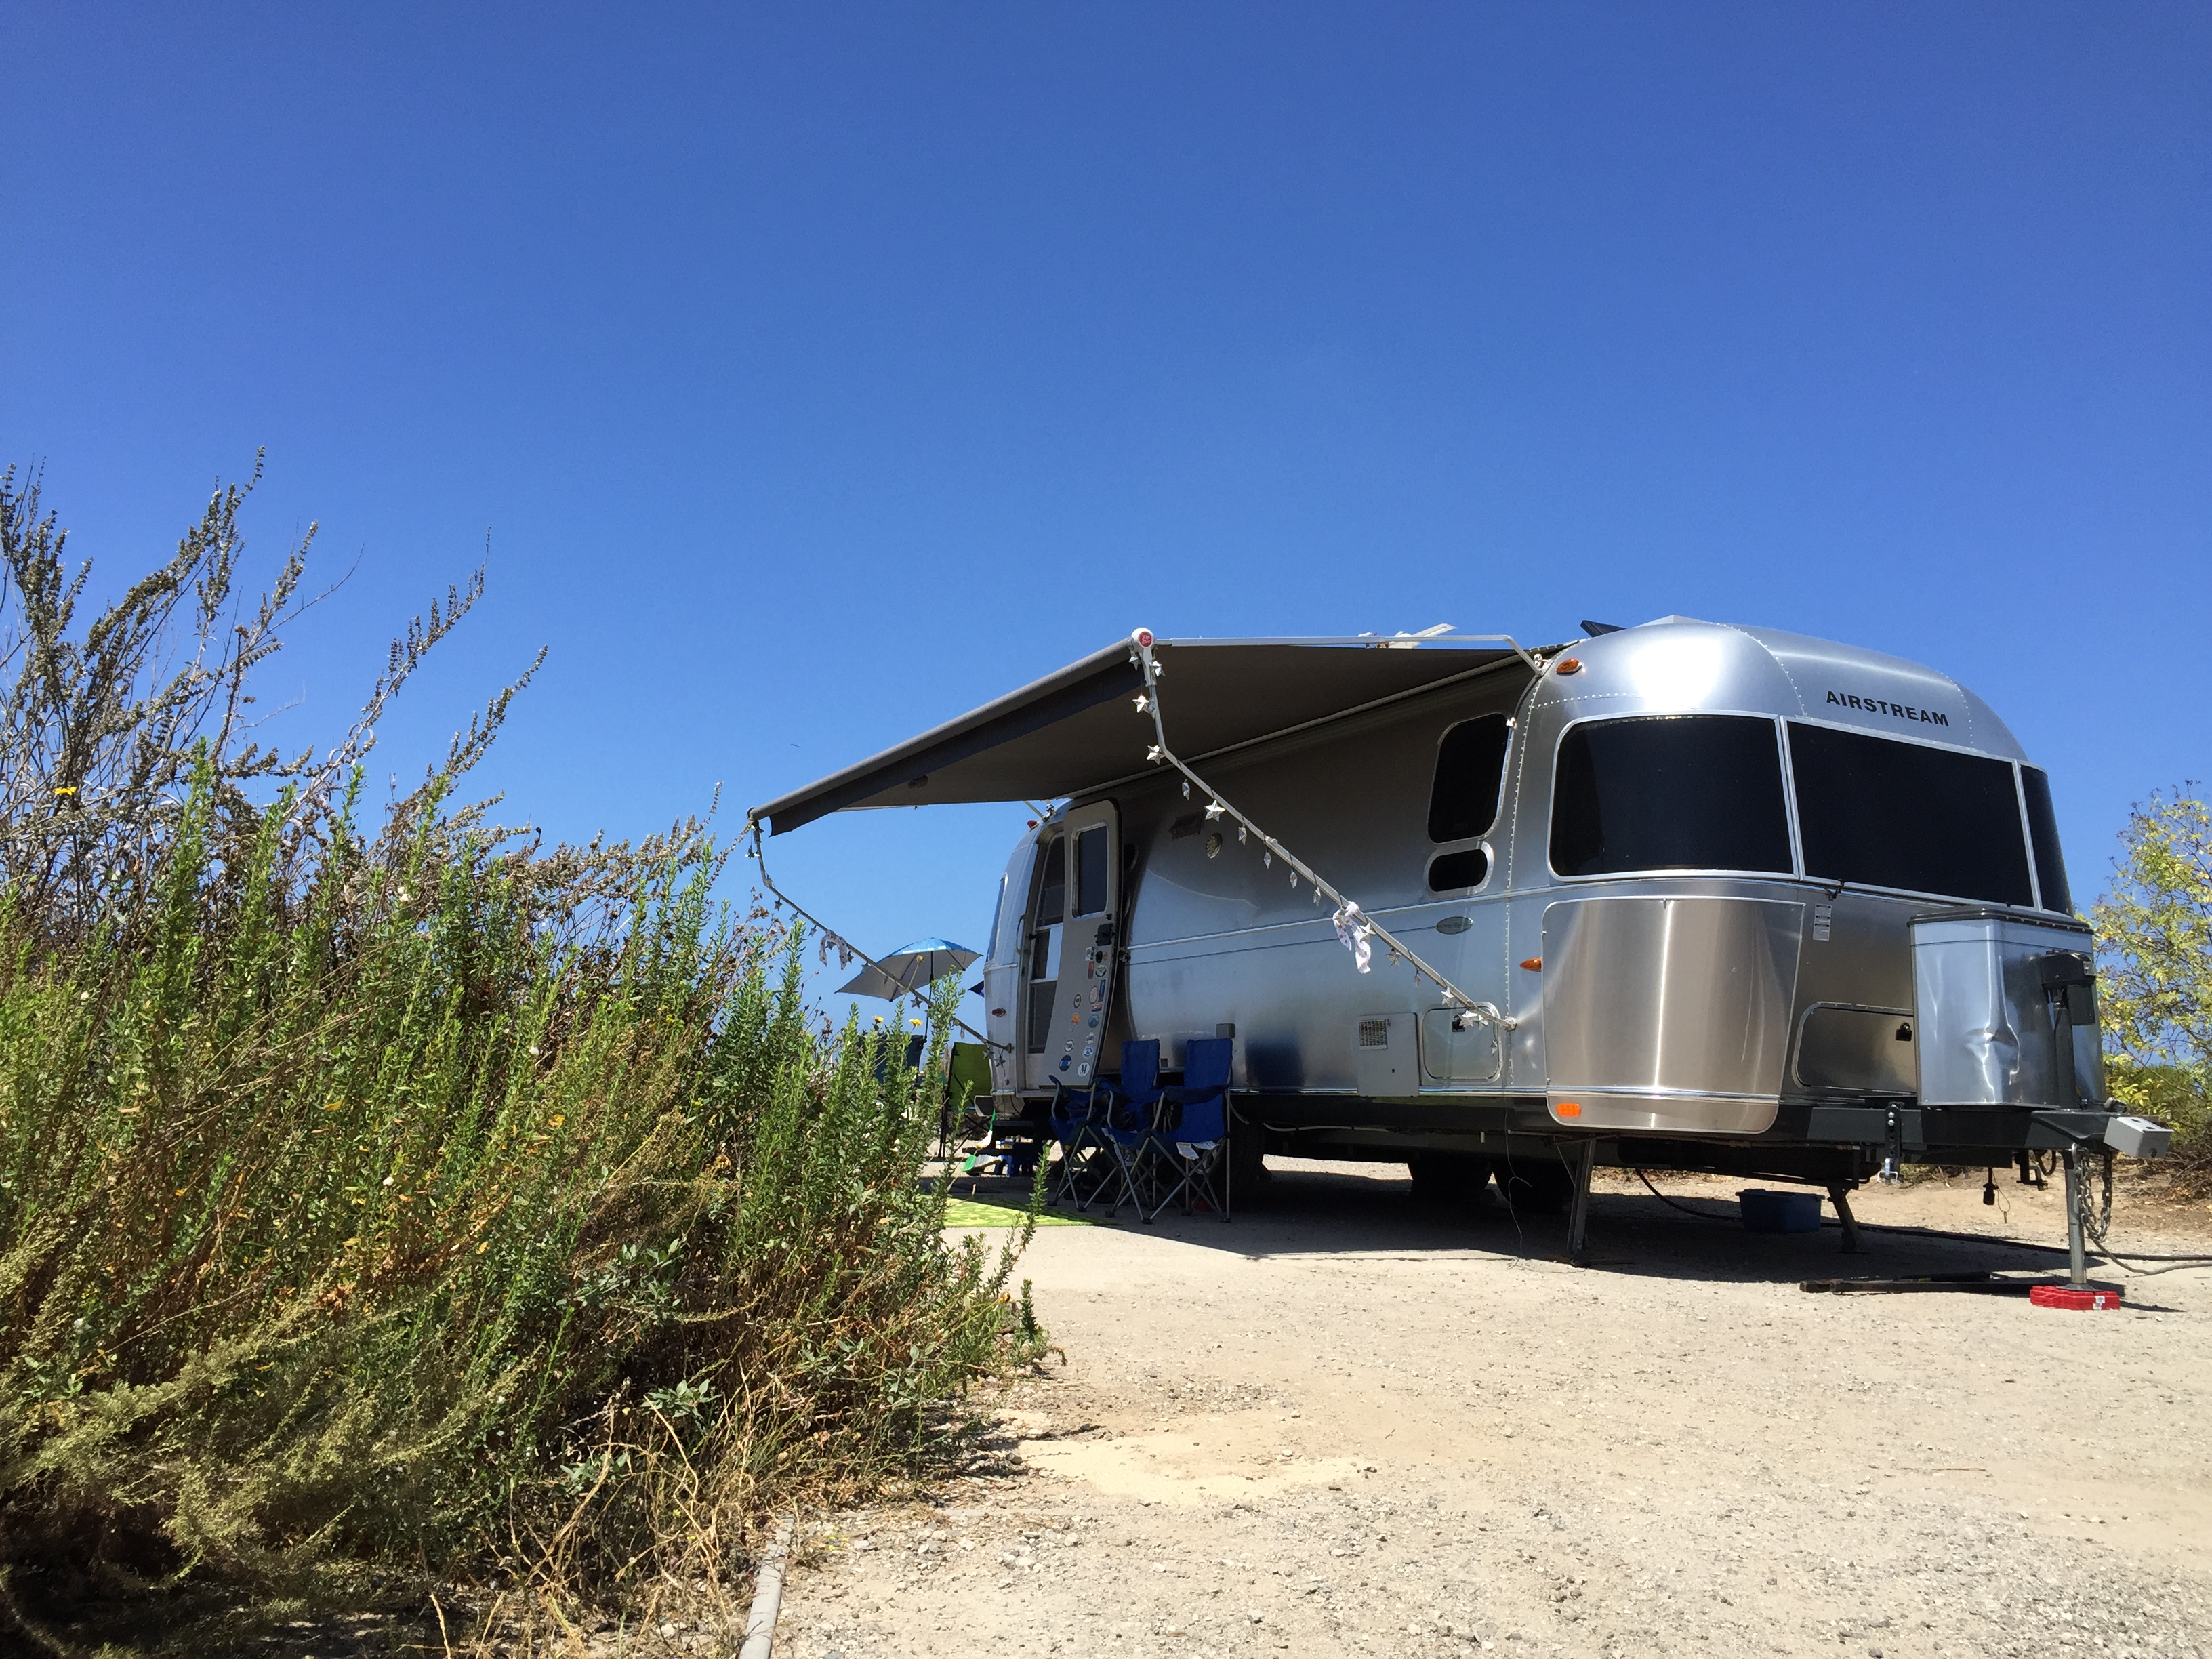 Coastal Solstice Trip and Eight Campgrounds to Crystal Cove